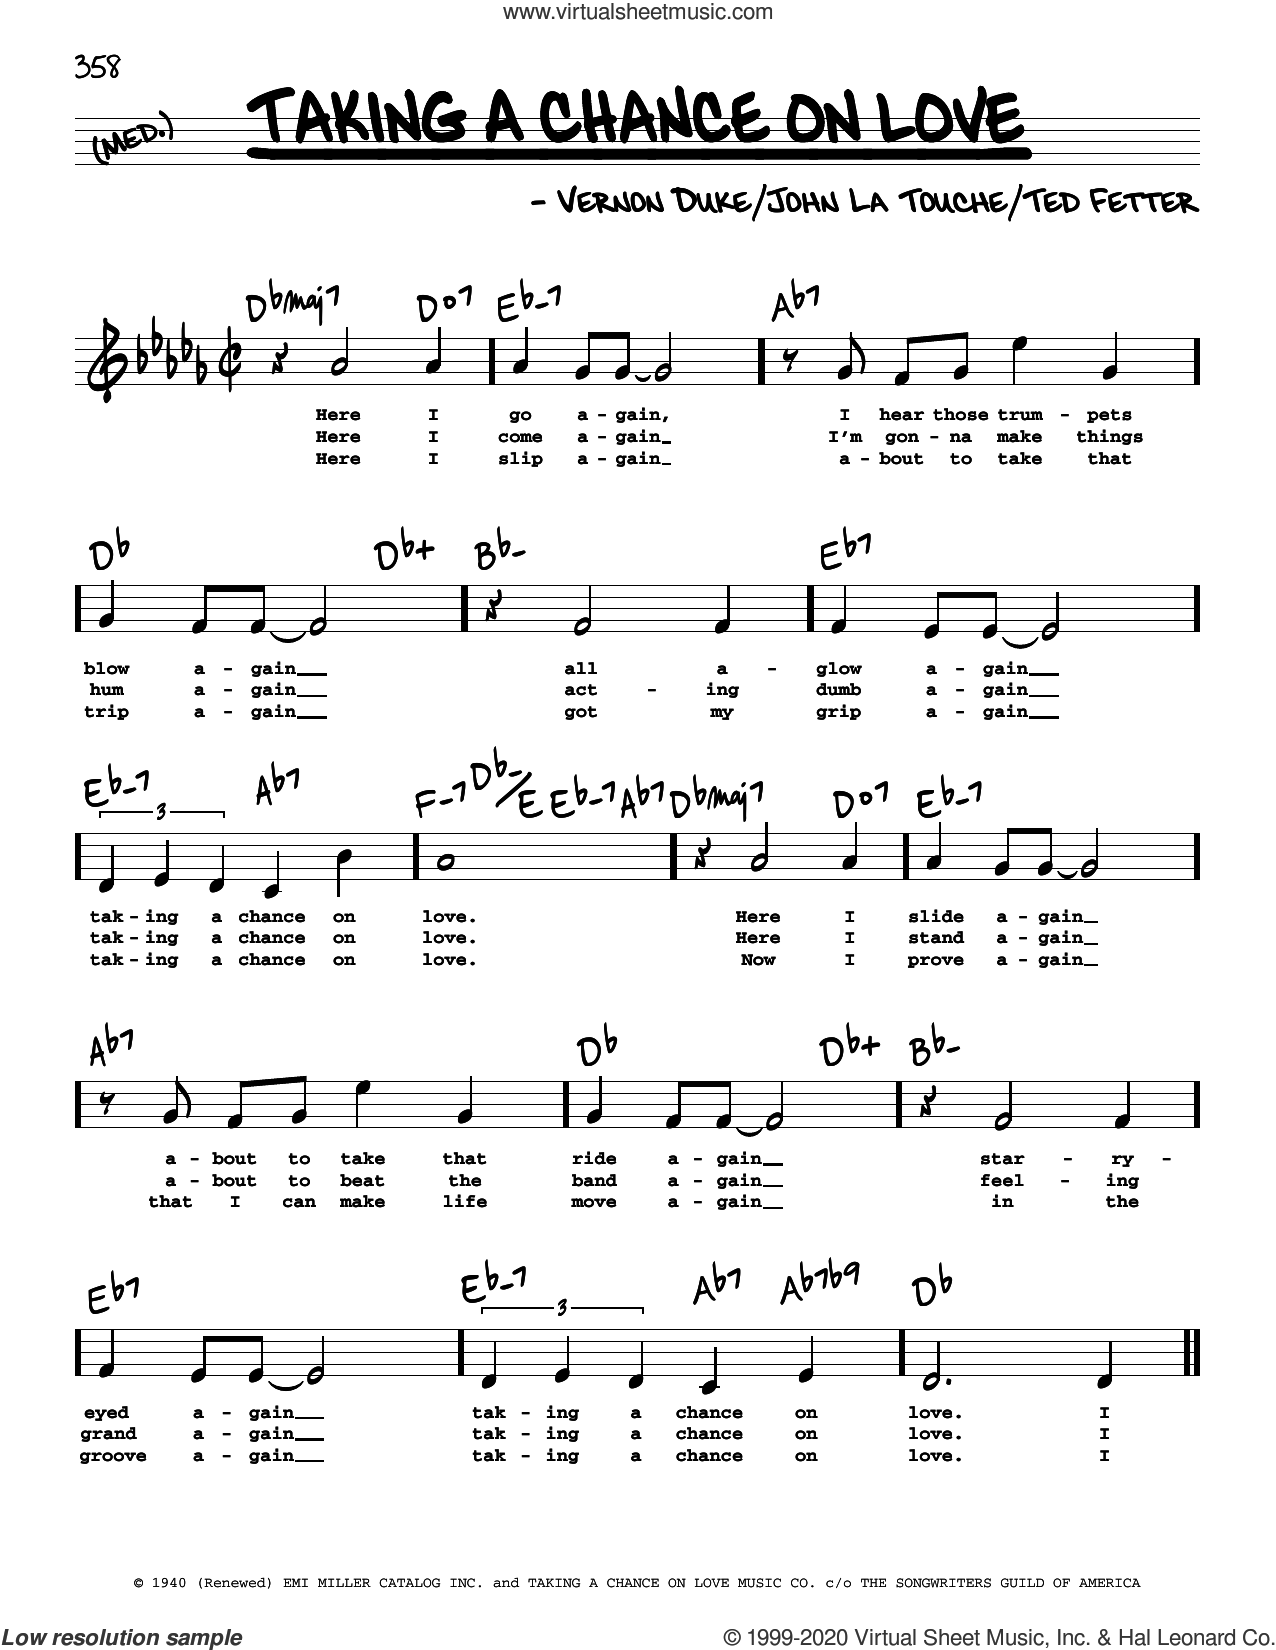 Taking A Chance On Love (High Voice) sheet music for voice and other instruments (high voice) by Vernon Duke, John Latouche and Ted Fetter, intermediate skill level